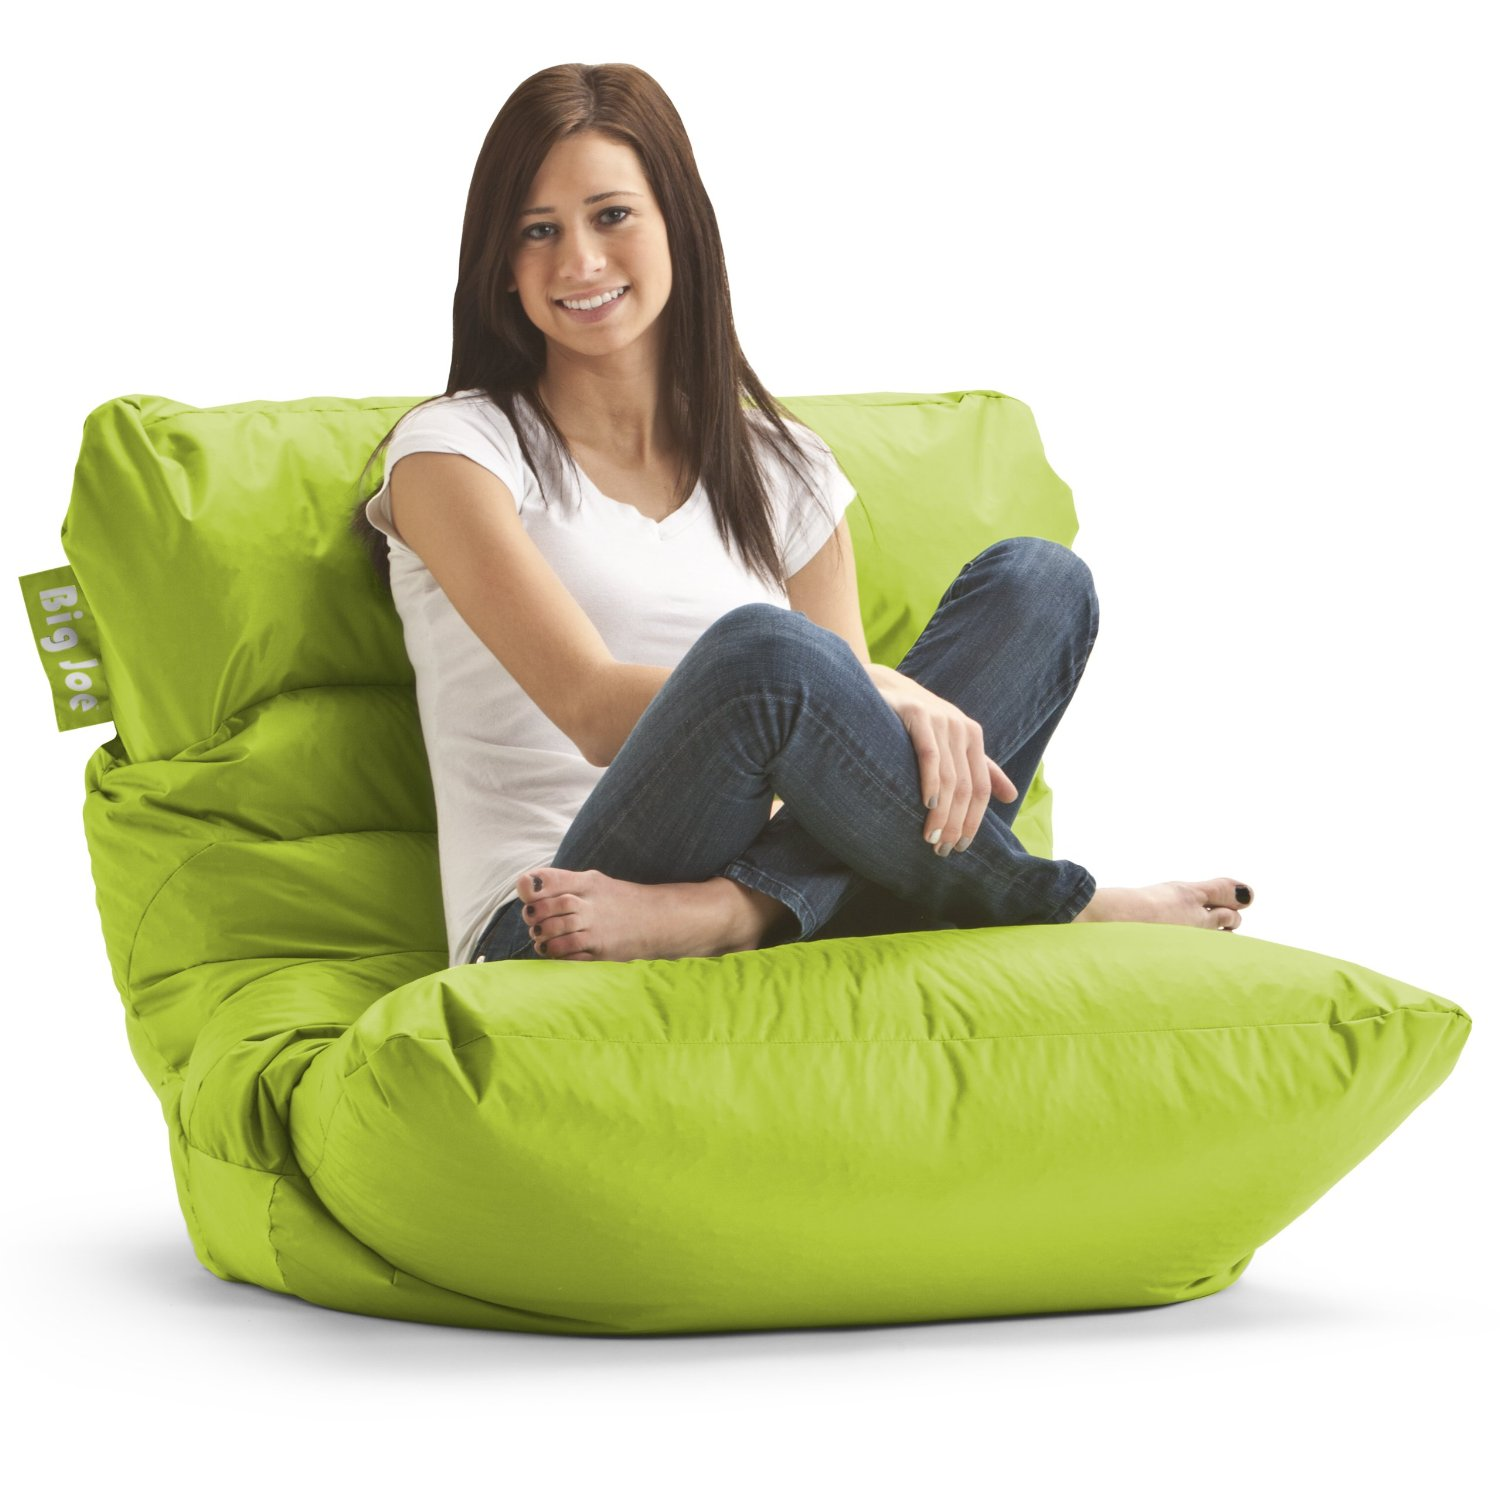 Why Using A Giant Bean Bag Chair Is Good For Your Health